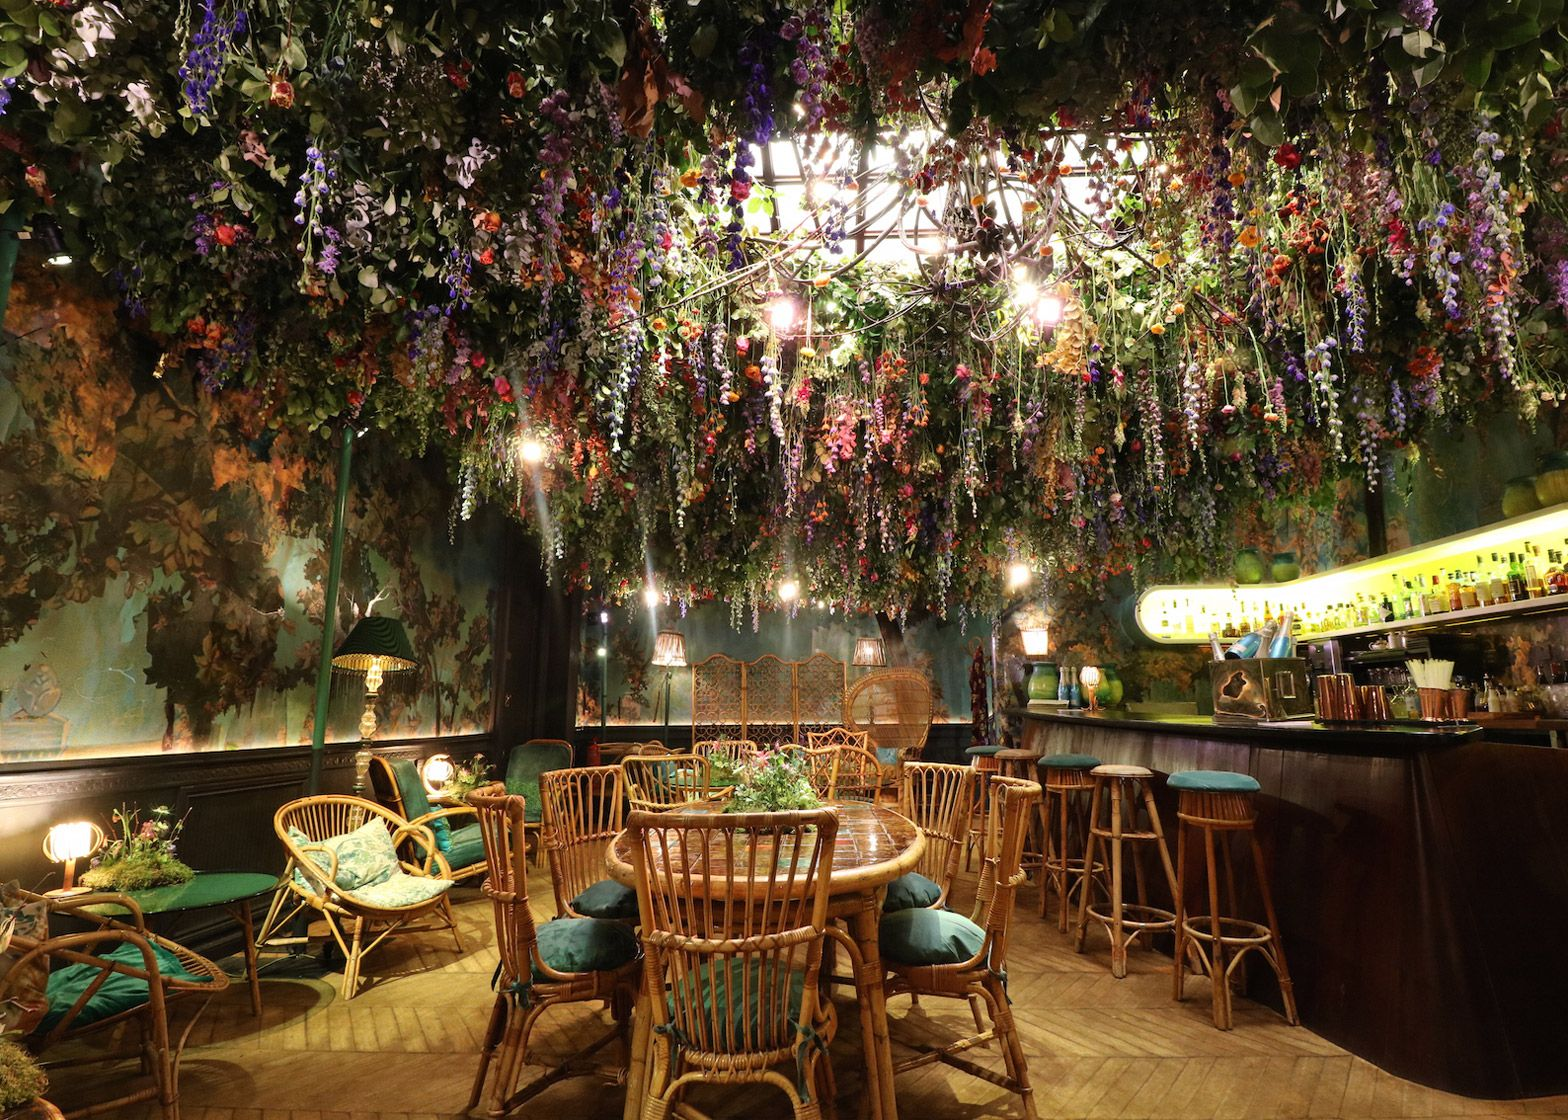 Sketch Restaurant Filled With Floral Installations For Flower Show Flower Cafe Sketch Restaurant Chelsea Flower Show